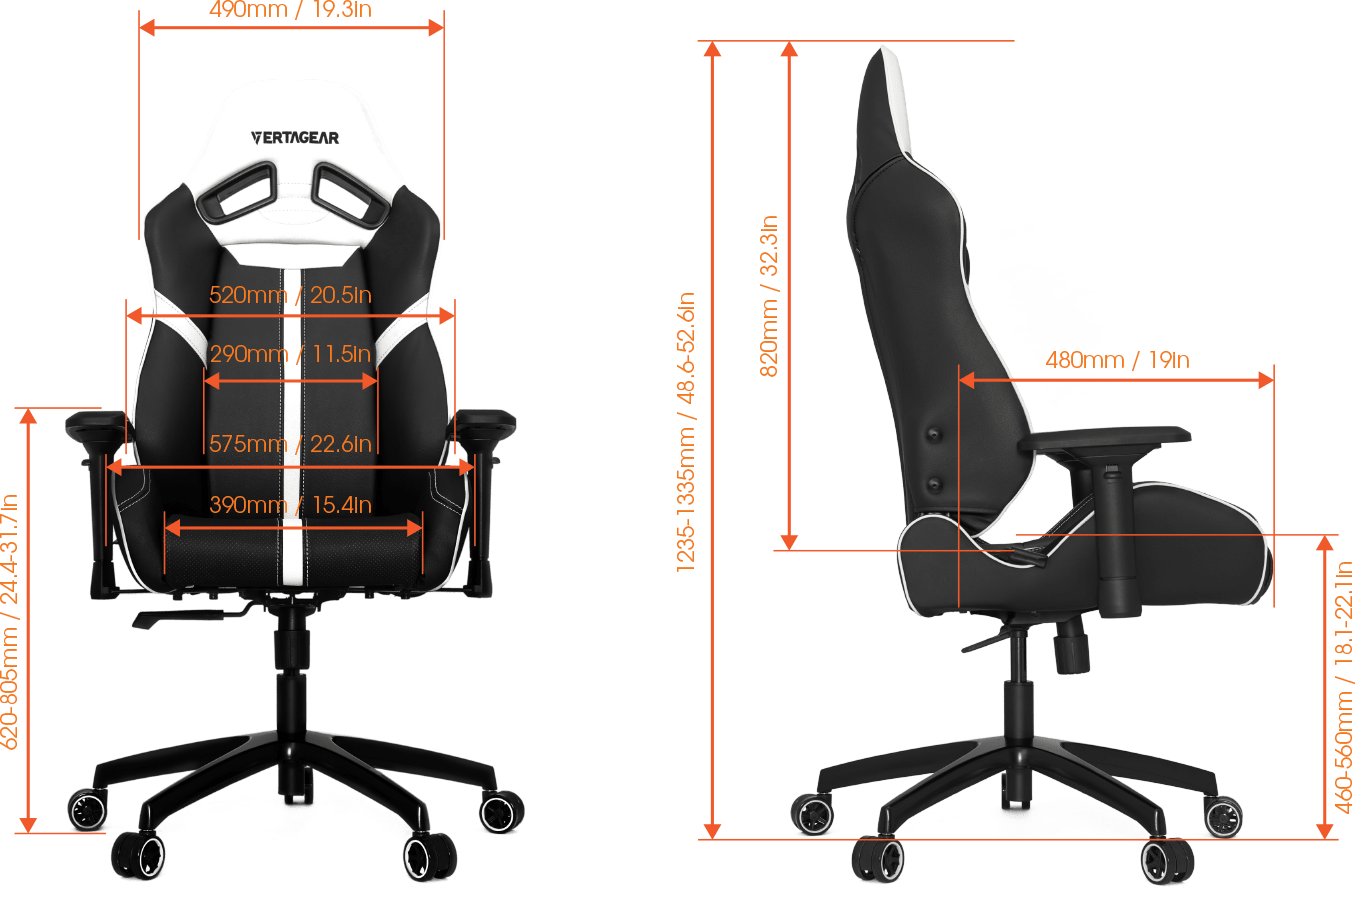 Vertagear SL5000 Specifications & size guide